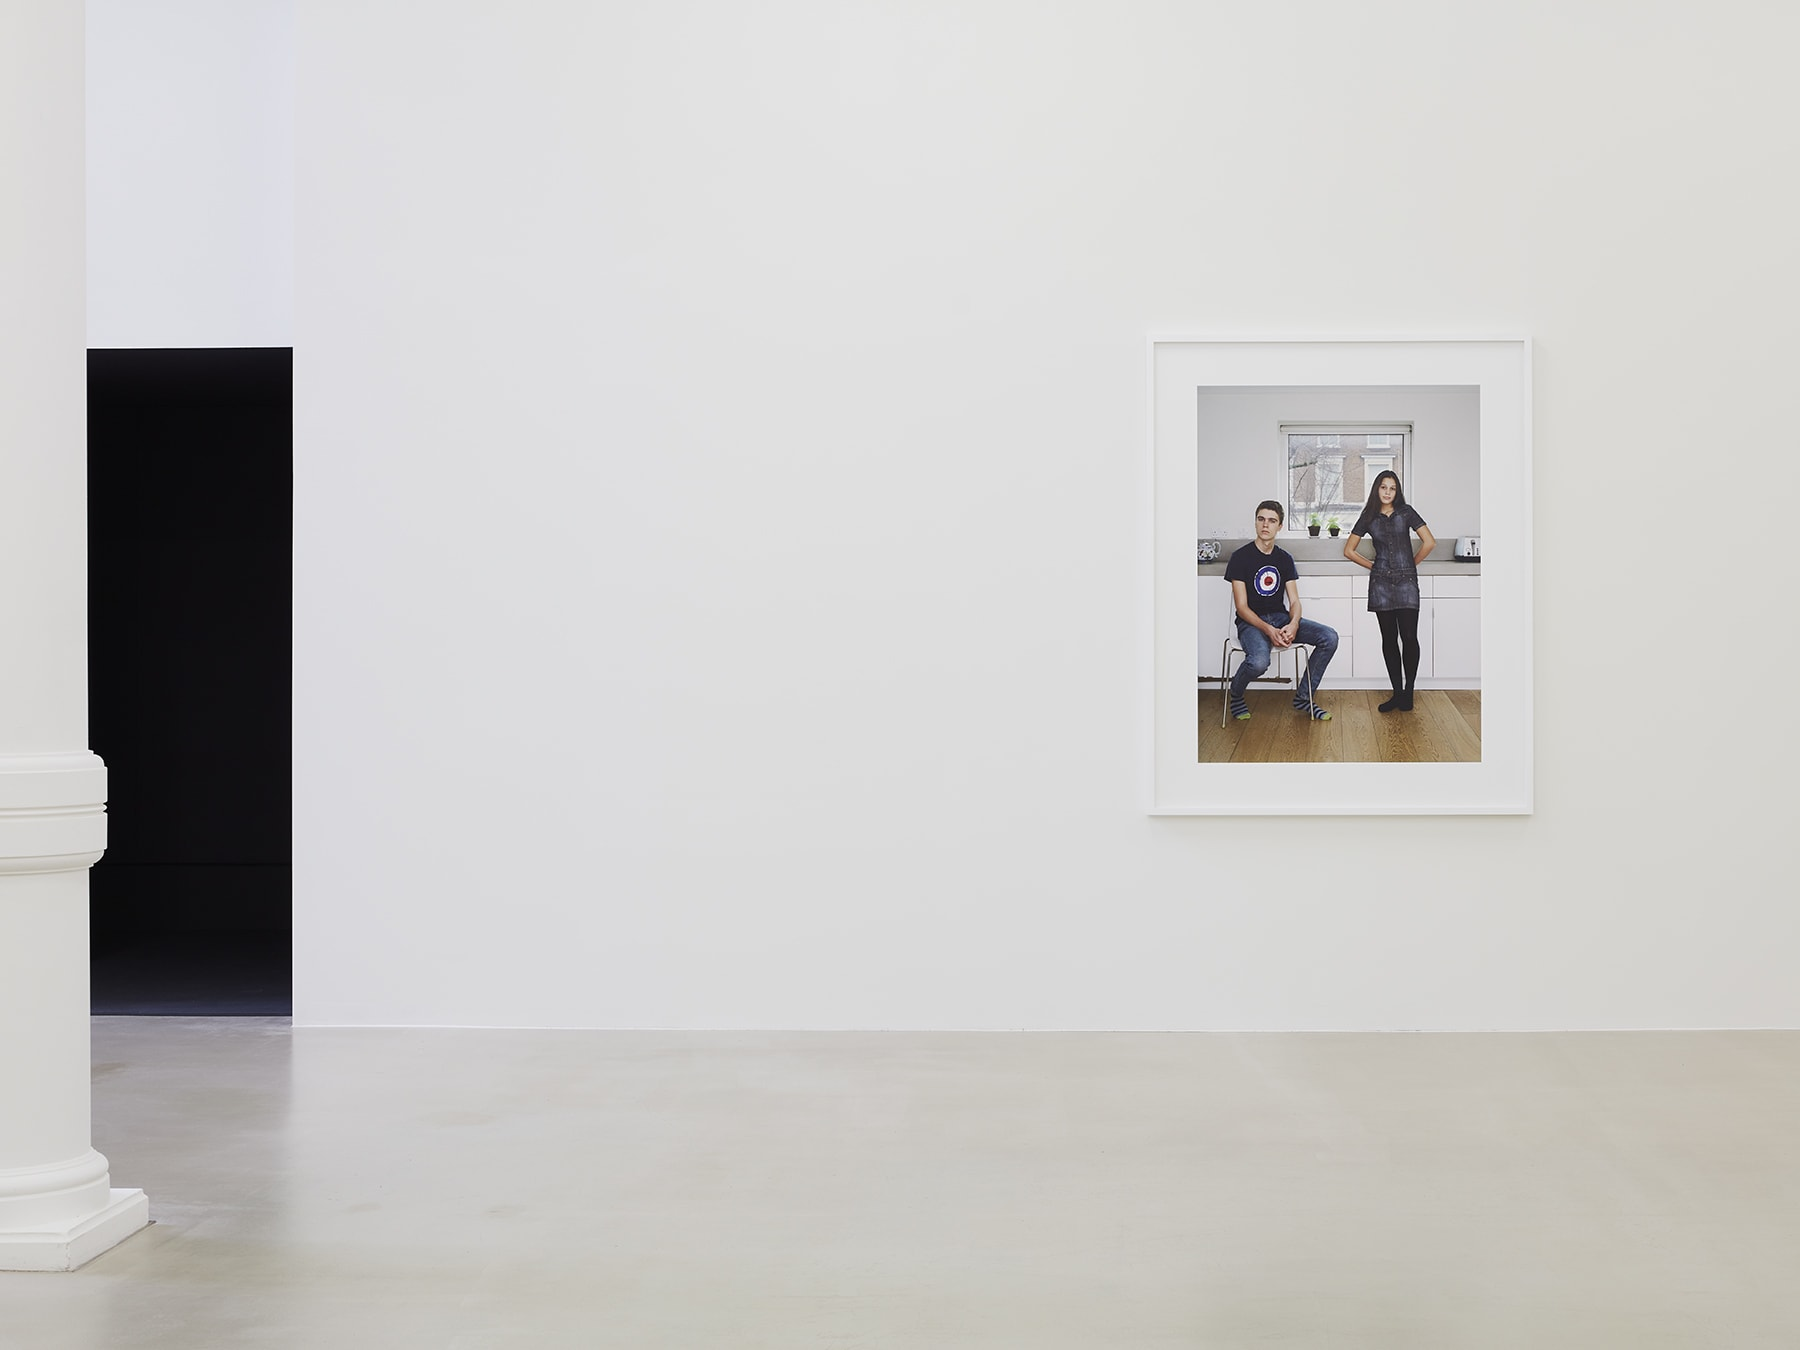 A framed photograph in Rineke Dijkstra's exhibition at Marian Goodman Gallery, London, March 2020